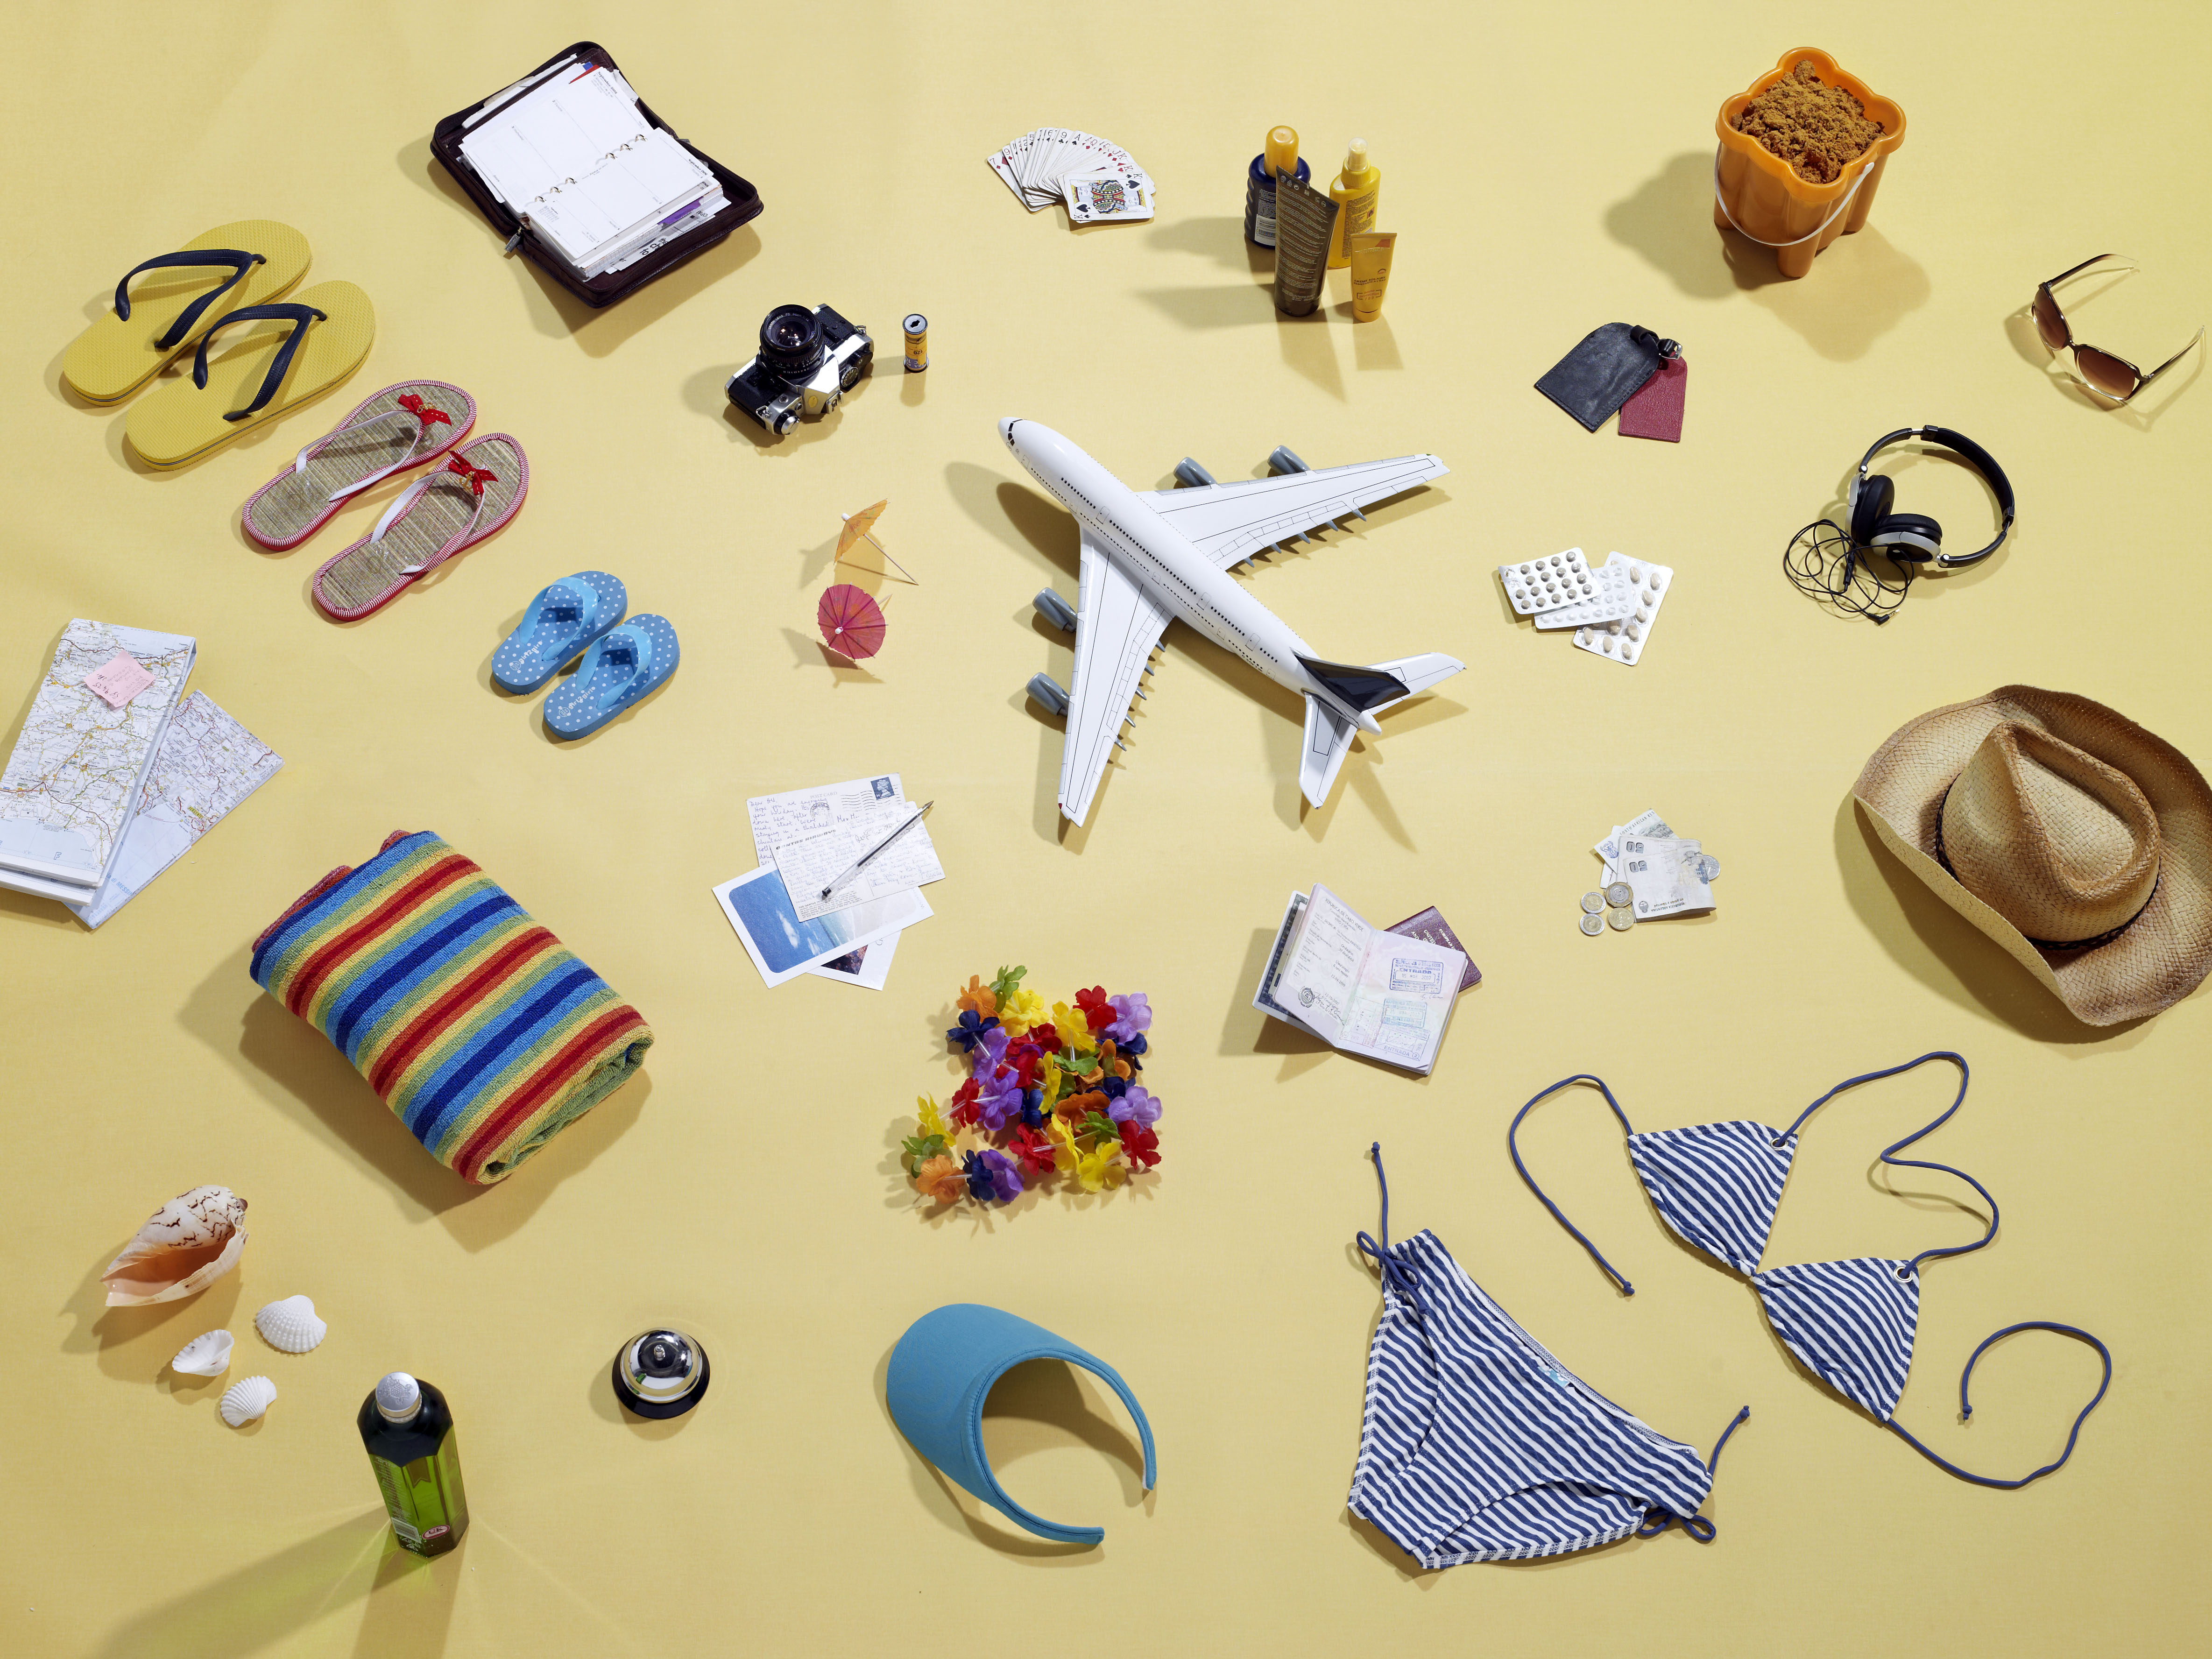 Still life items that represent a family holiday.